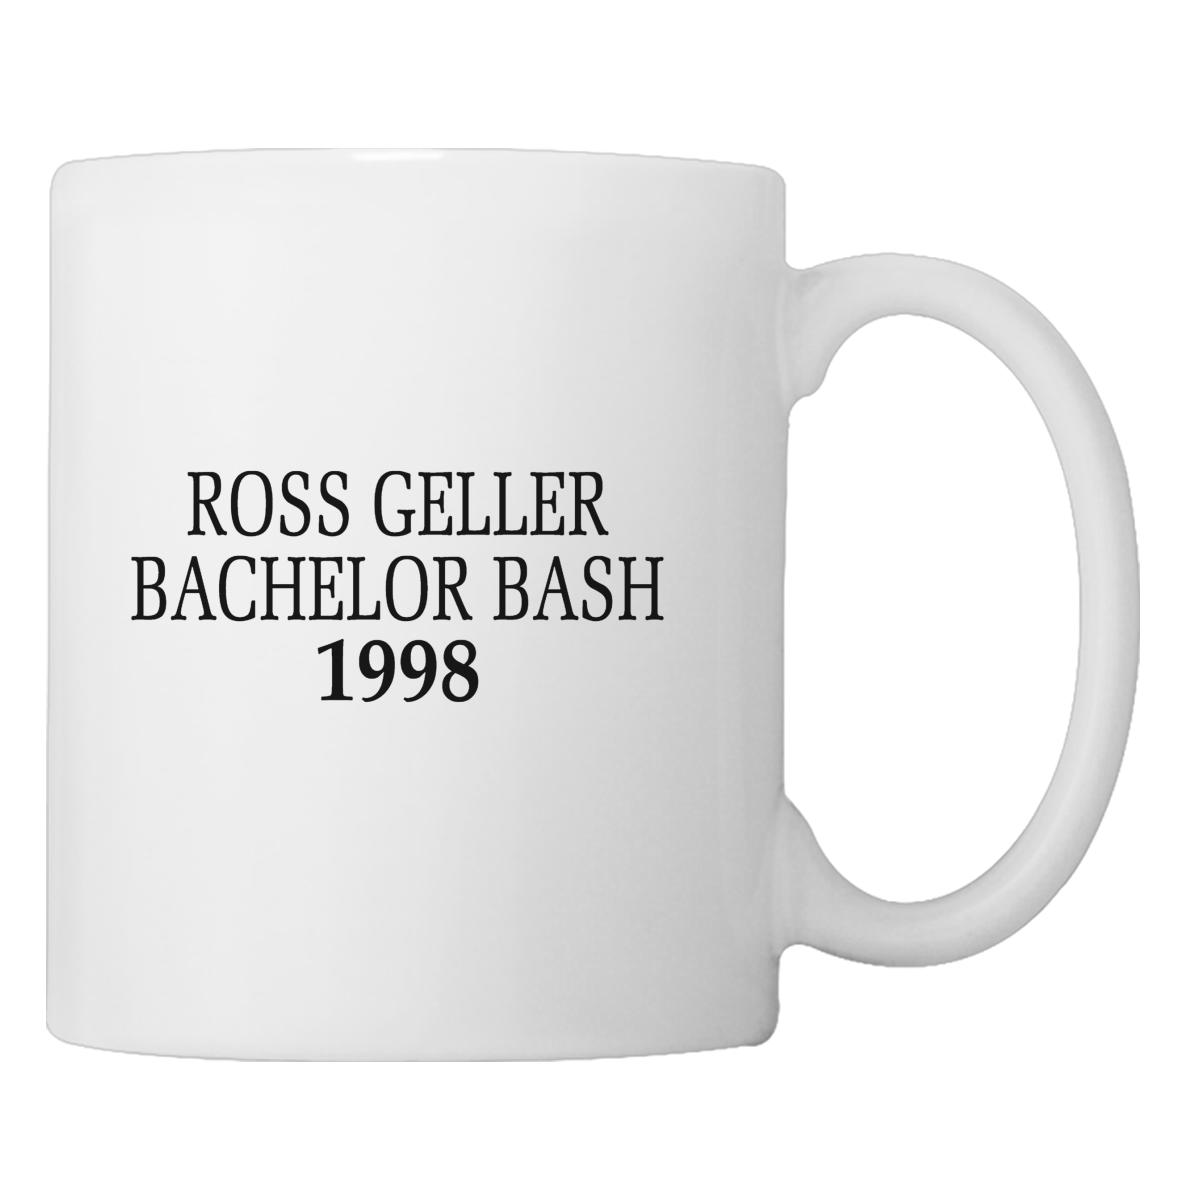 Ross Geller Bachelor Bash 1998 Coffee Mug Cup